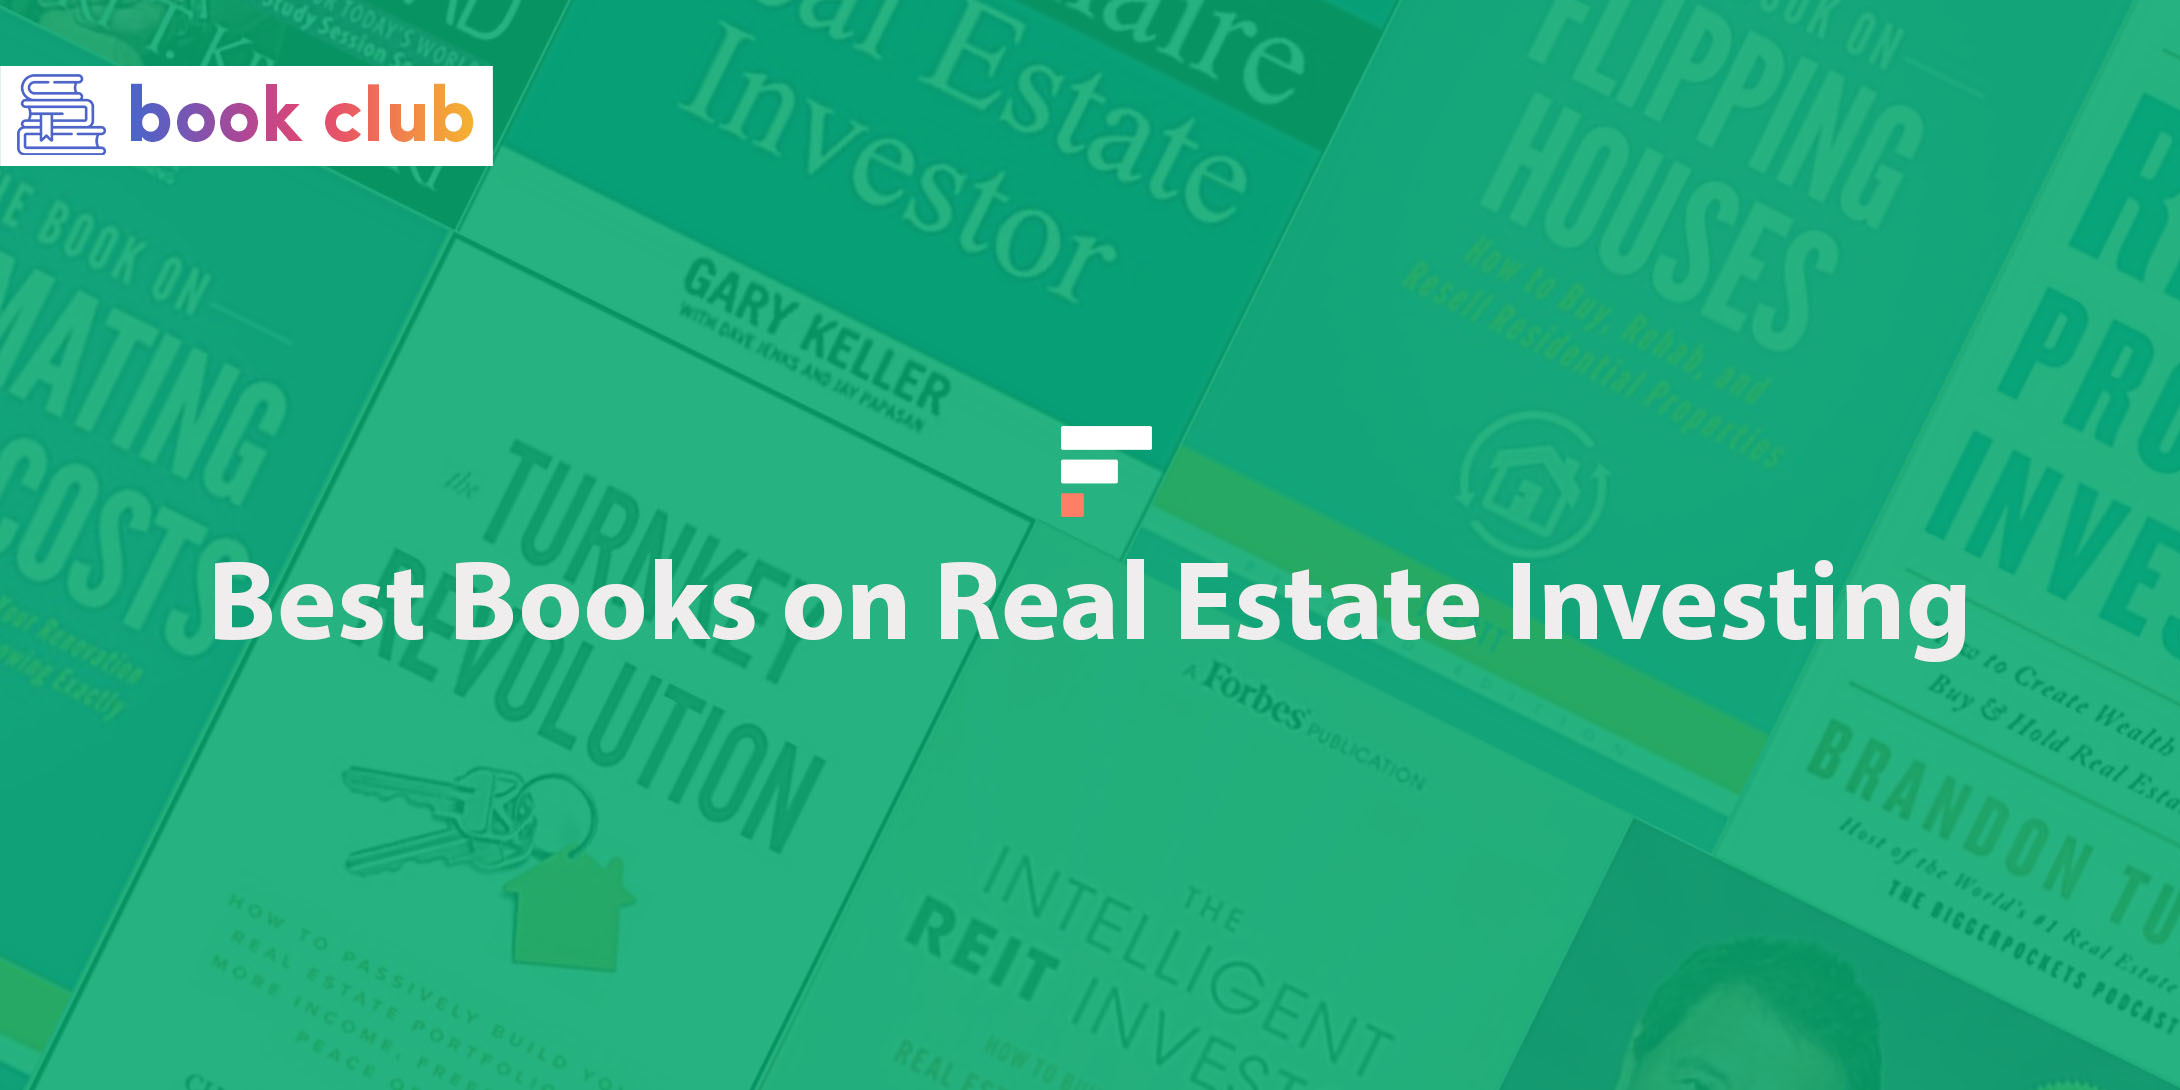 7 Best Books on Real Estate Investing